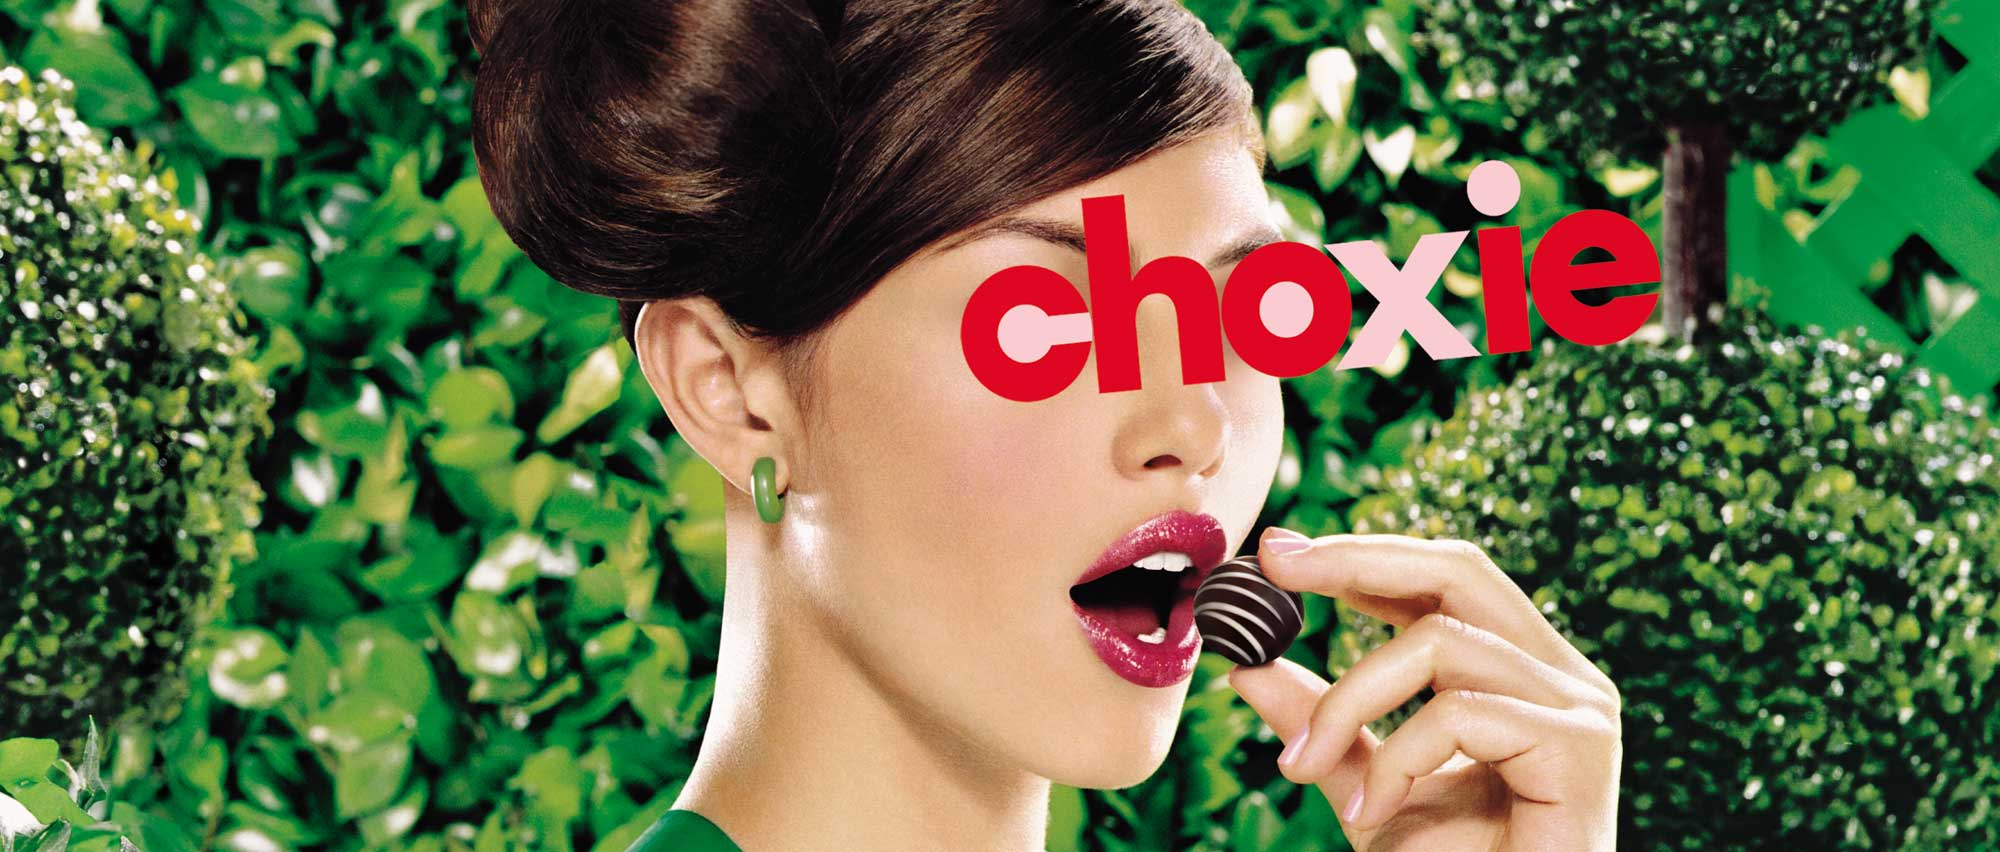 Choxie for Target